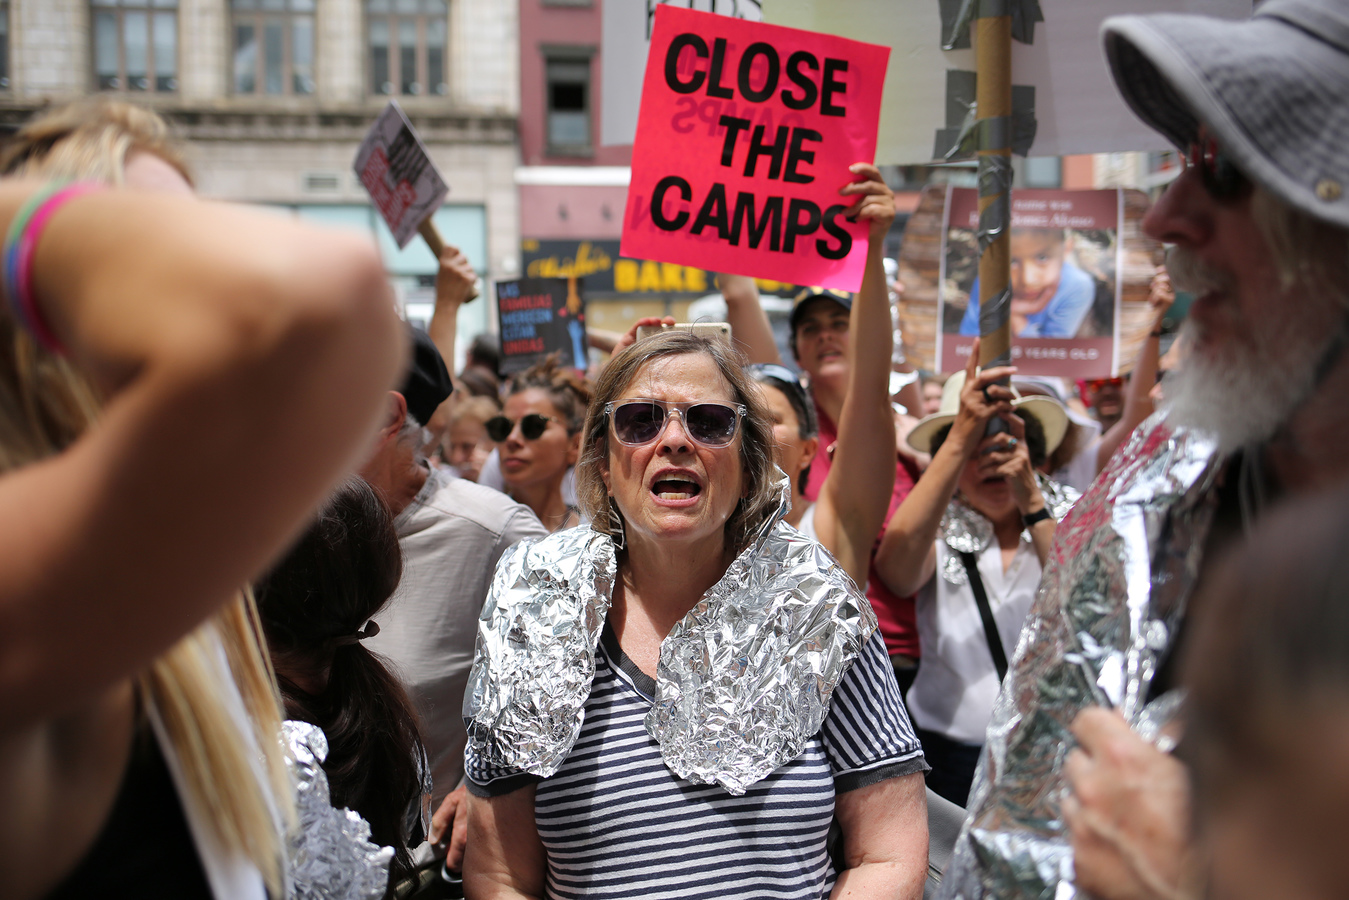 Close The Camps Middle Collegiate Church 7/2/19